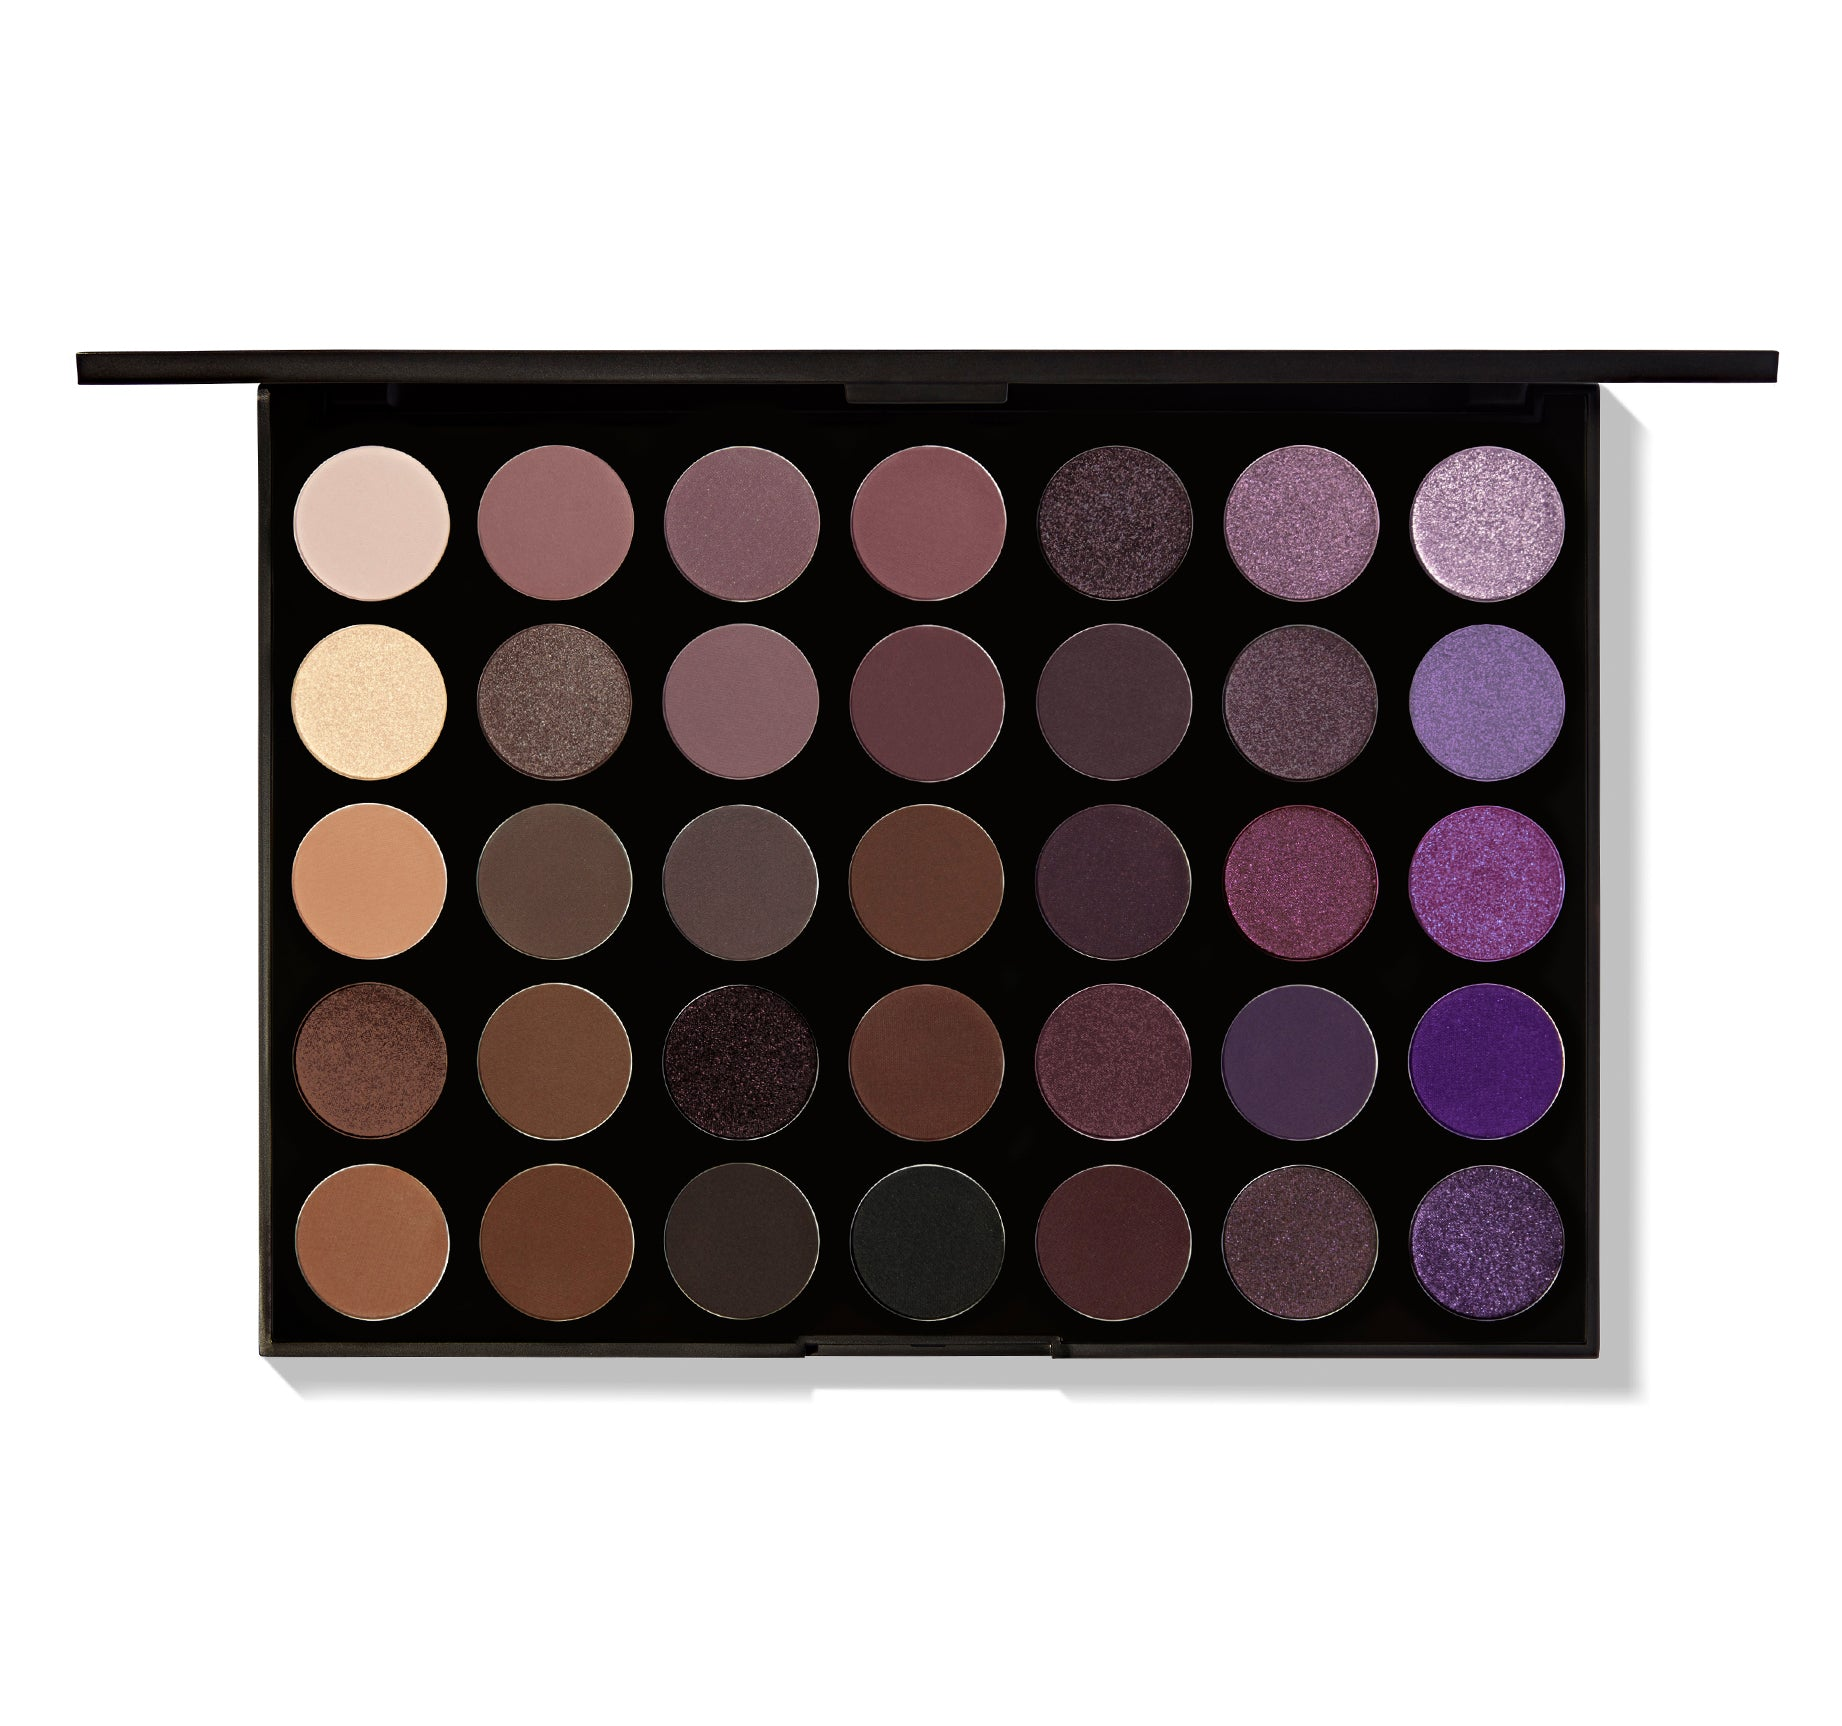 35P PLUM PLEASERS ARTISTRY PALETTE, view larger image